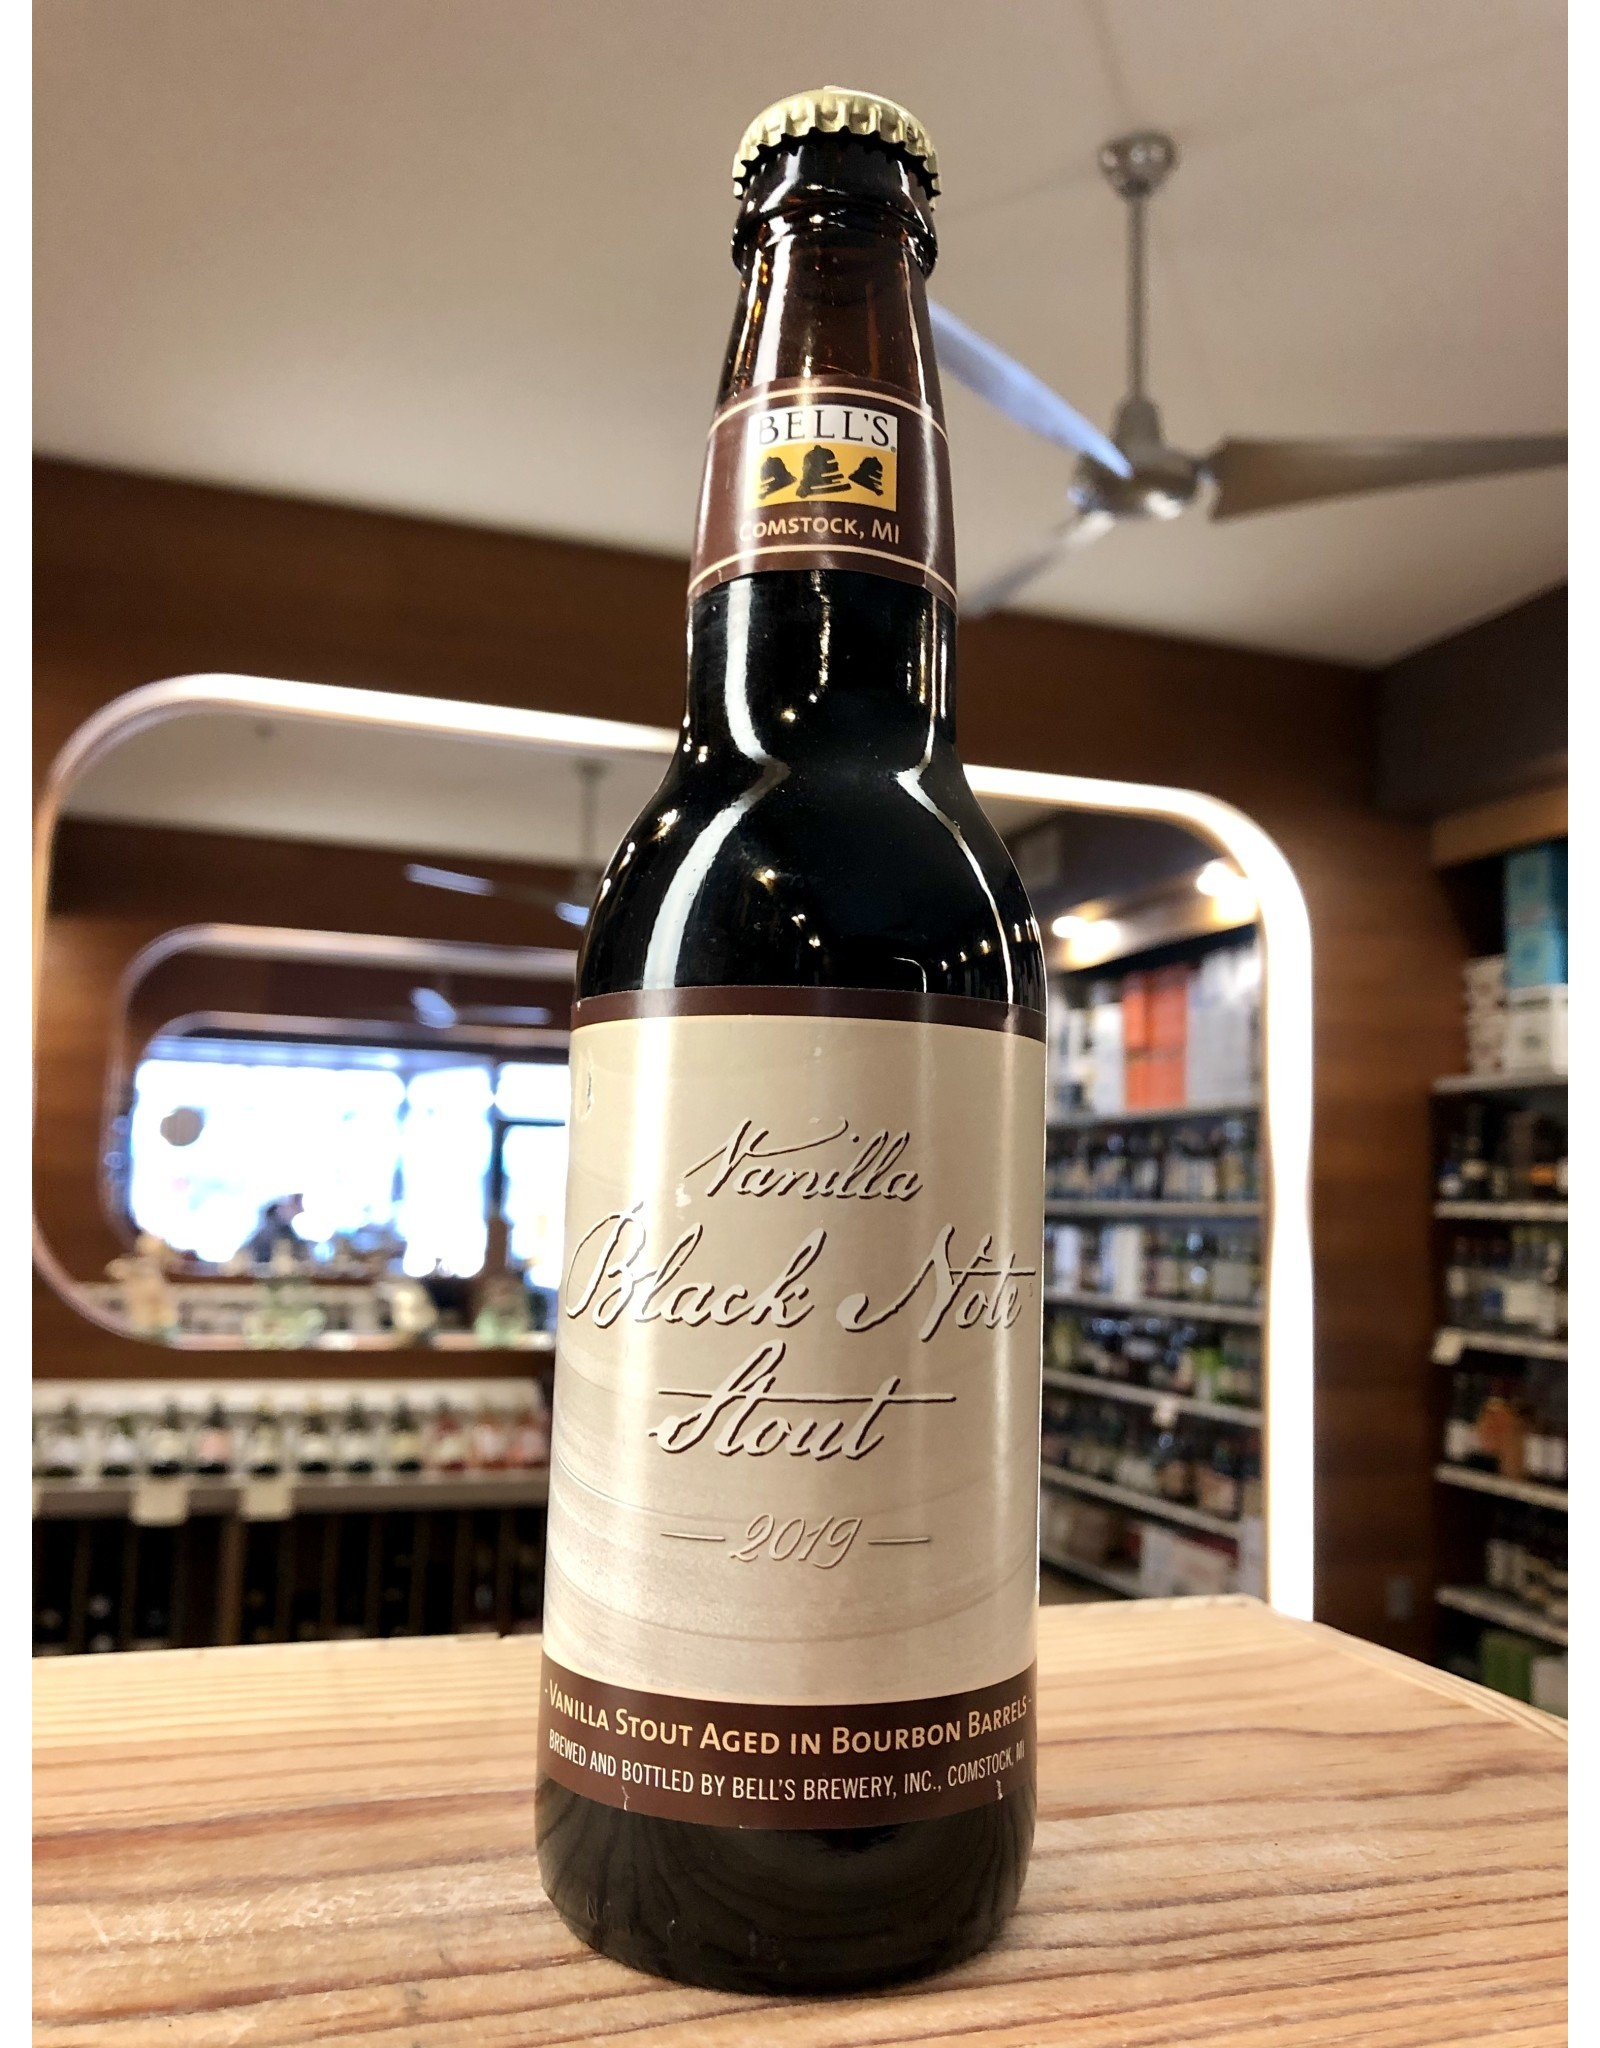 Bell's Vanilla Black Note Stout - 12 oz.